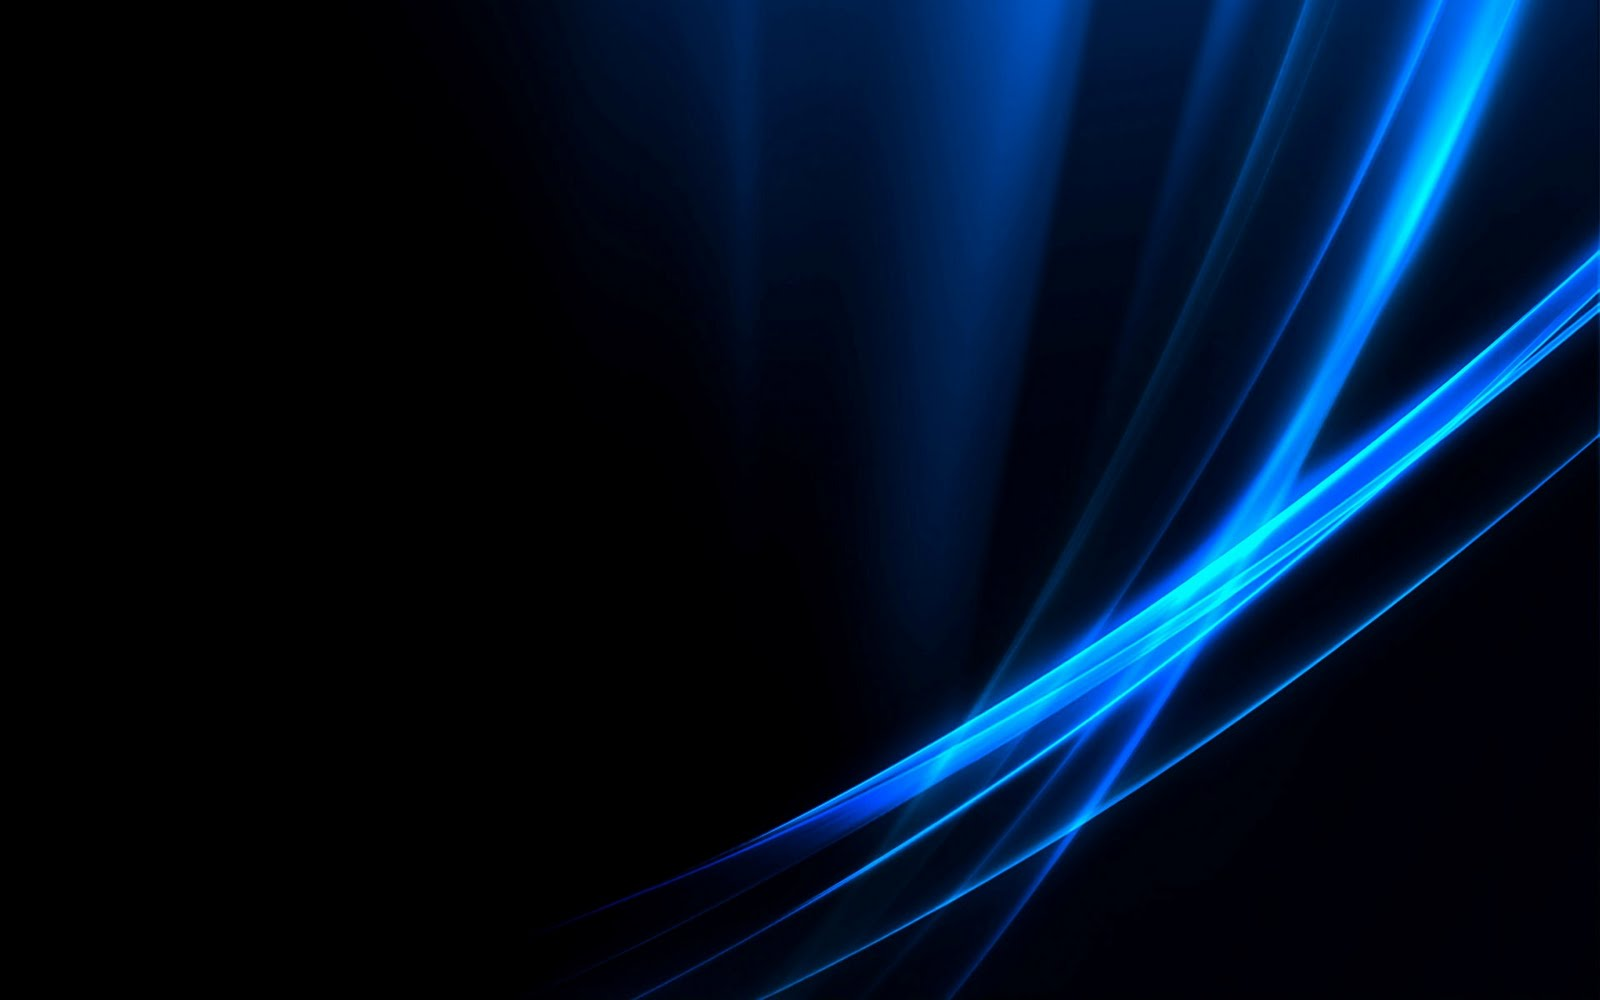 Black And Blue Cool 3d Wallpapers: DESIGN GRÁFICO E 3D